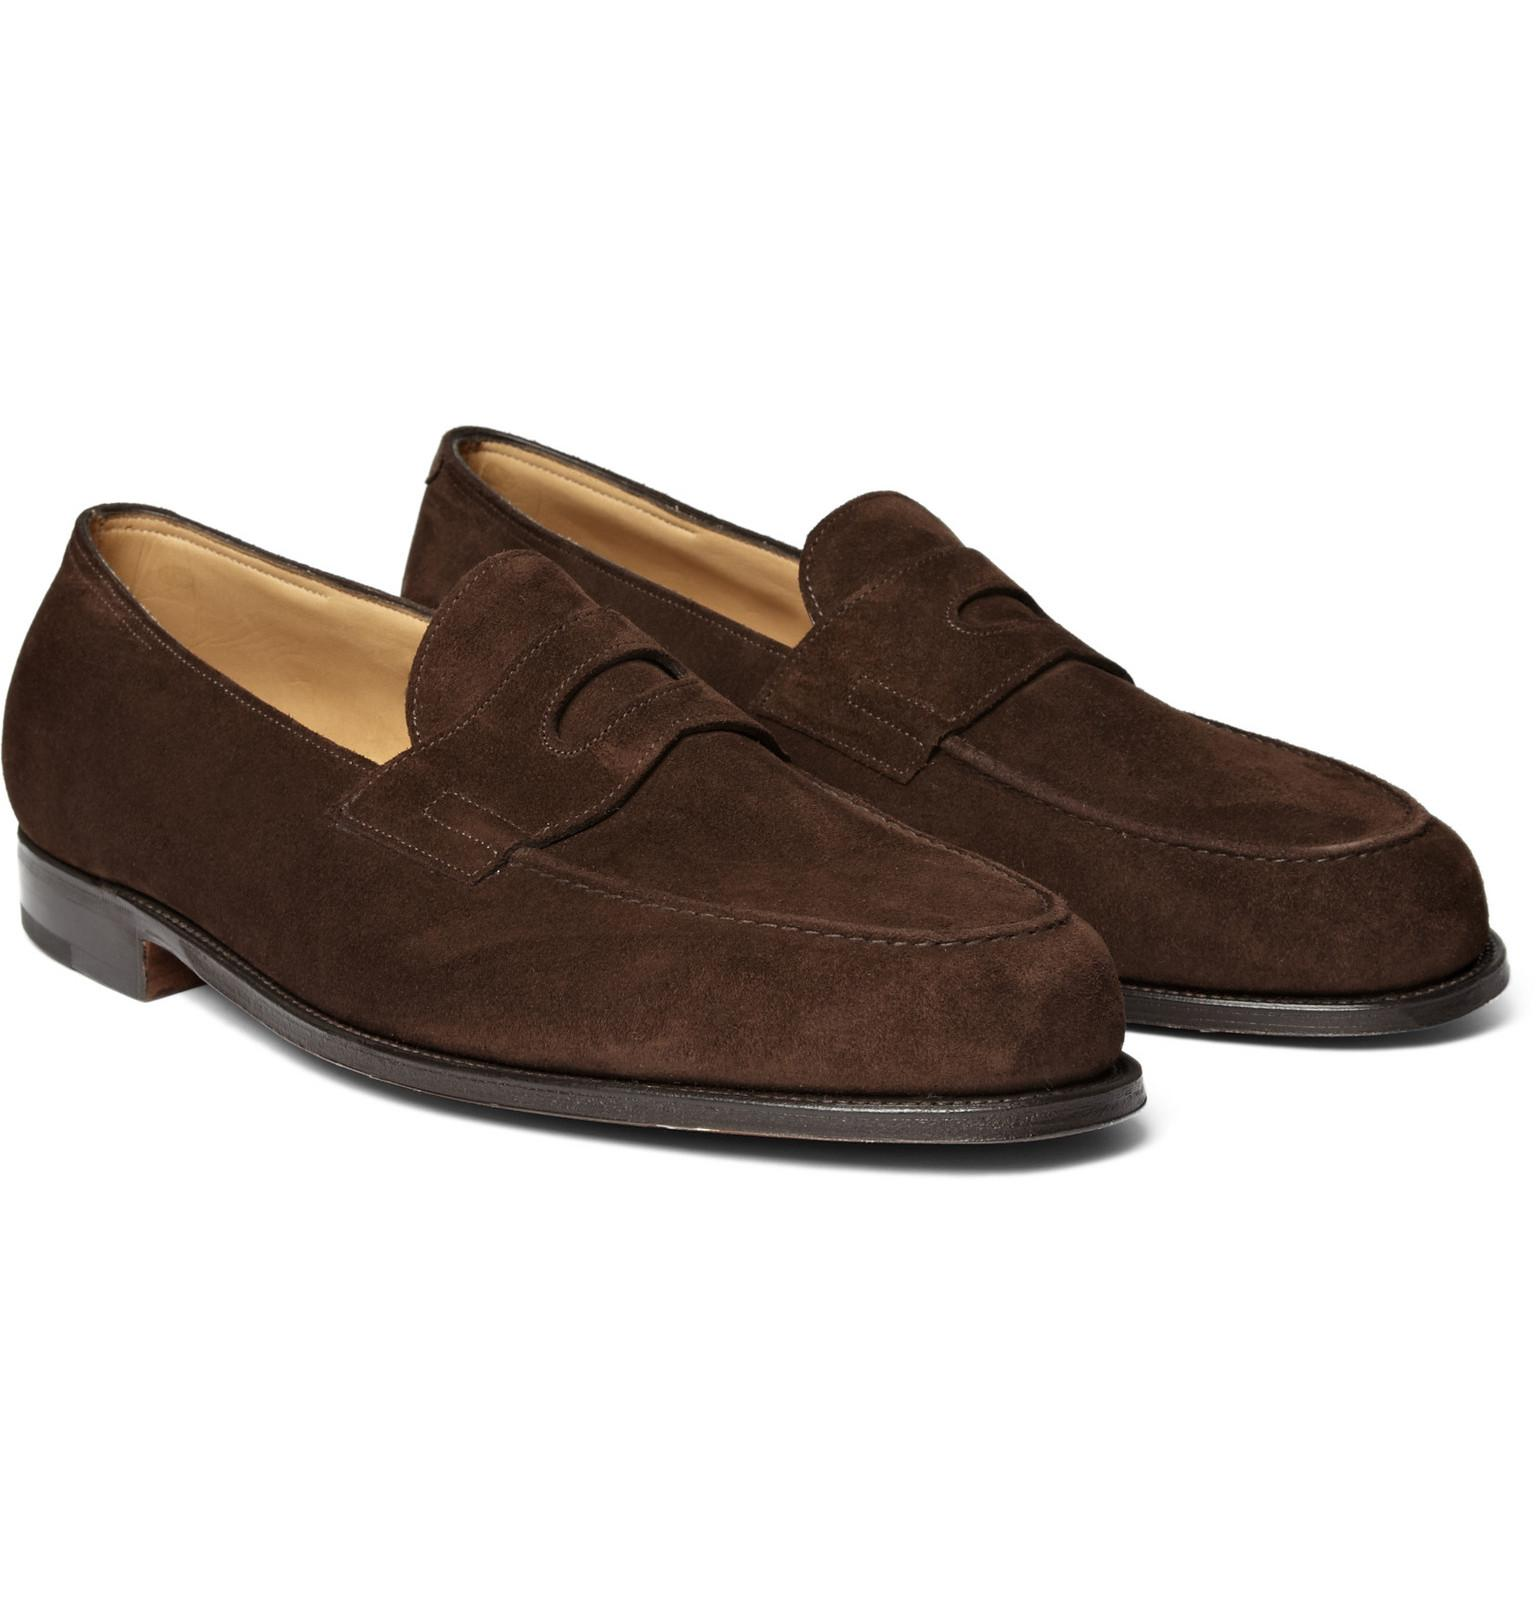 a78f140ab44 John Lobb Lopez Suede Penny Loafers in Brown for Men - Lyst